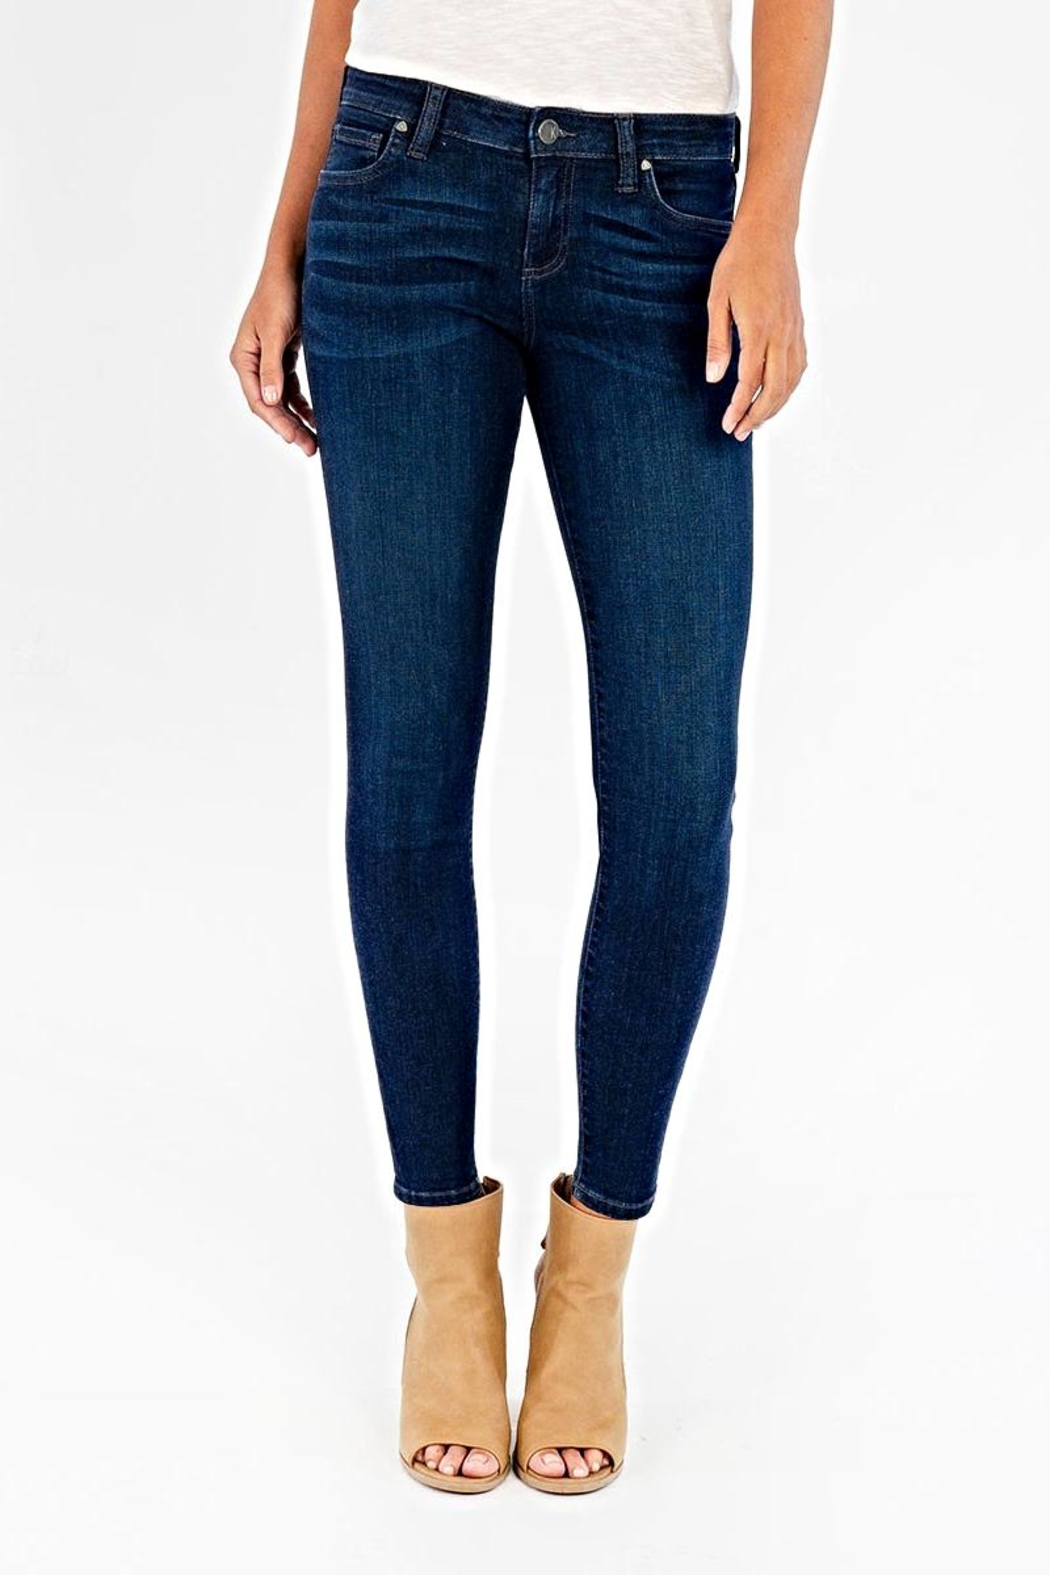 Kut from the Kloth Connie Ankle Skinny - Main Image